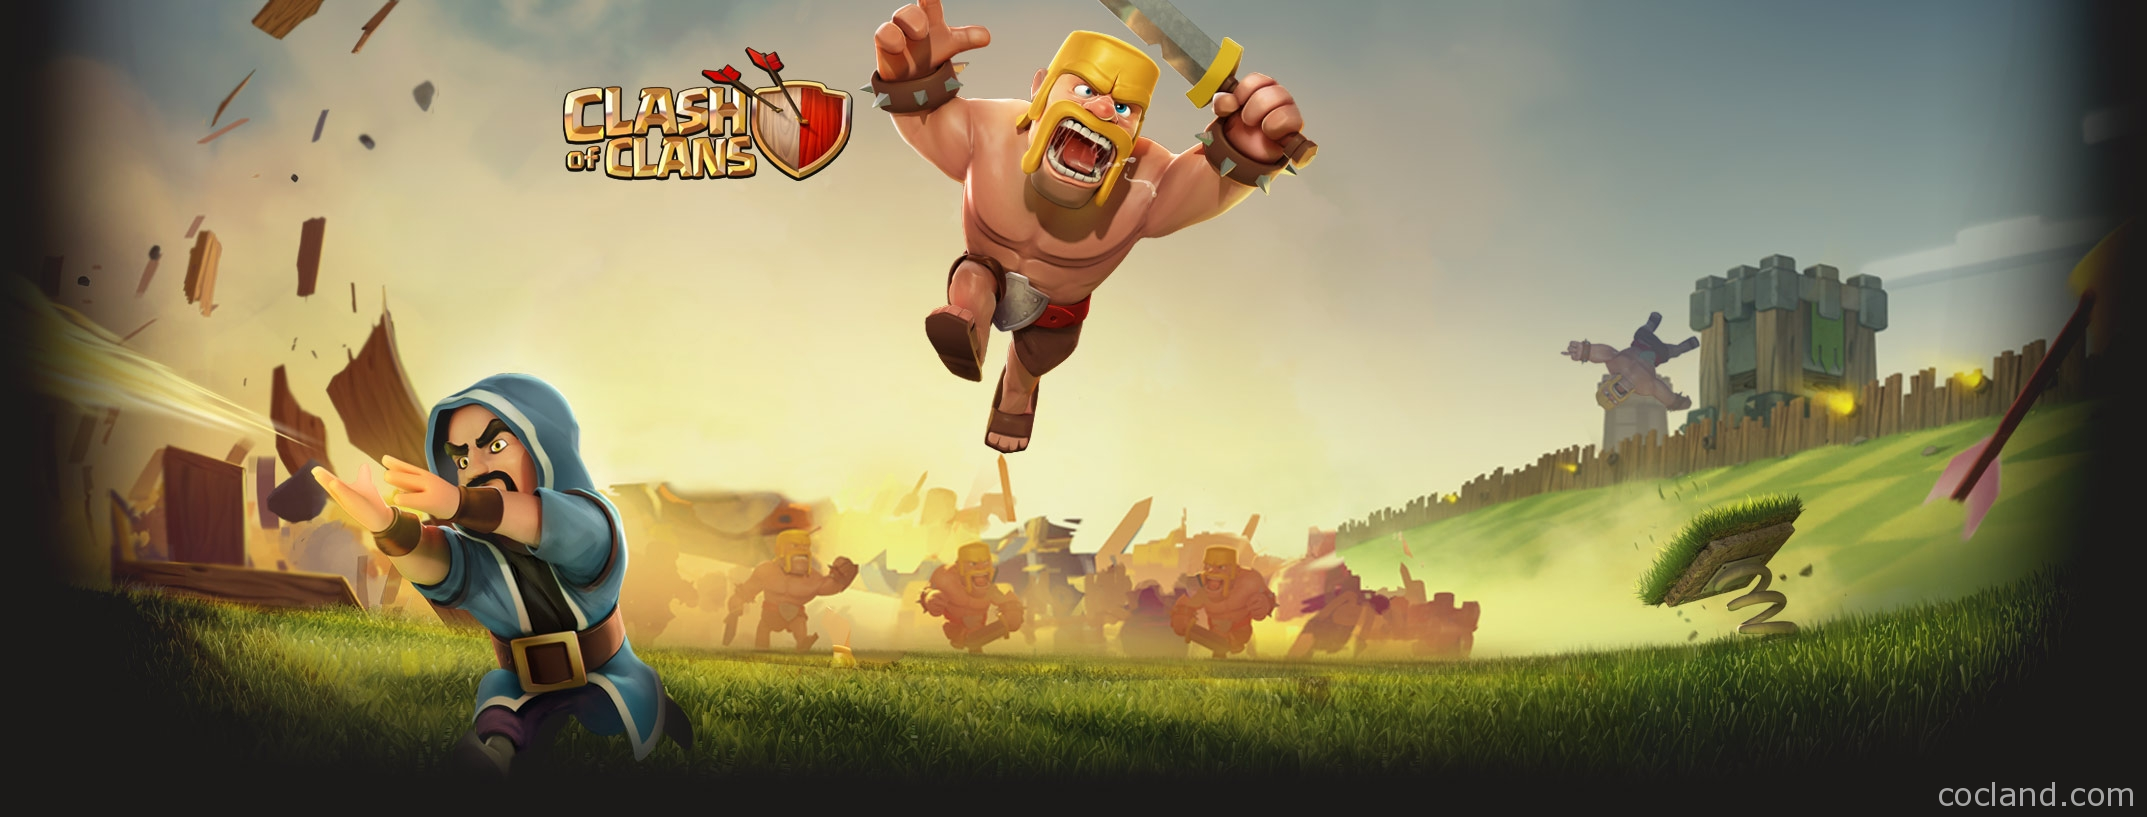 clash of clans wallpaper   Large Images 2147x817